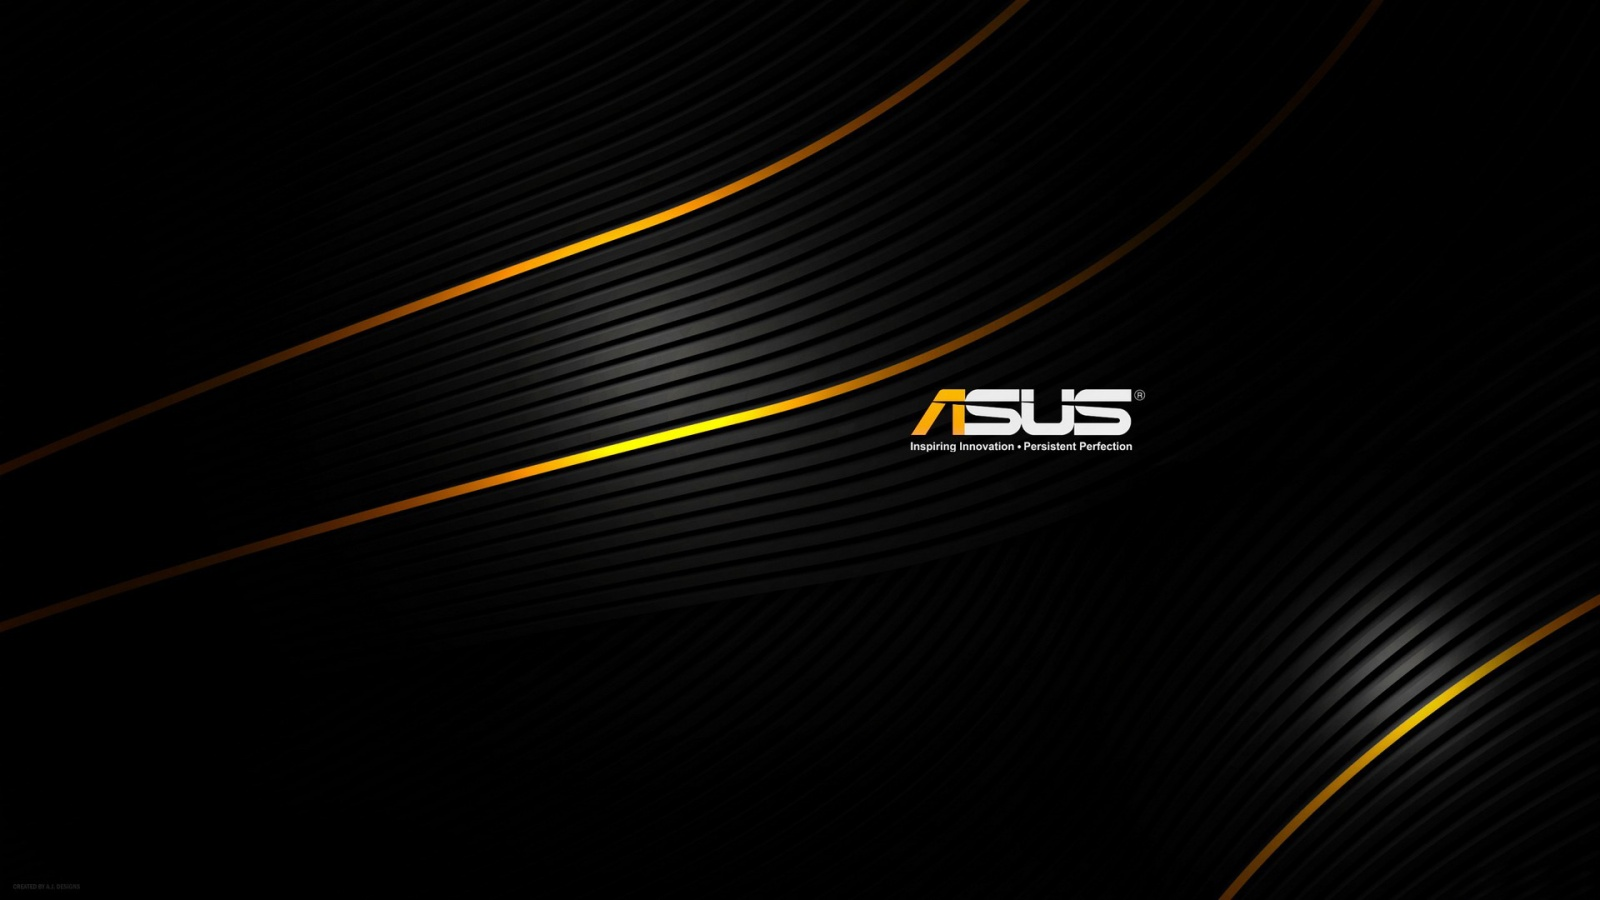 asus black background wallpapers - 1600x900 - 193225